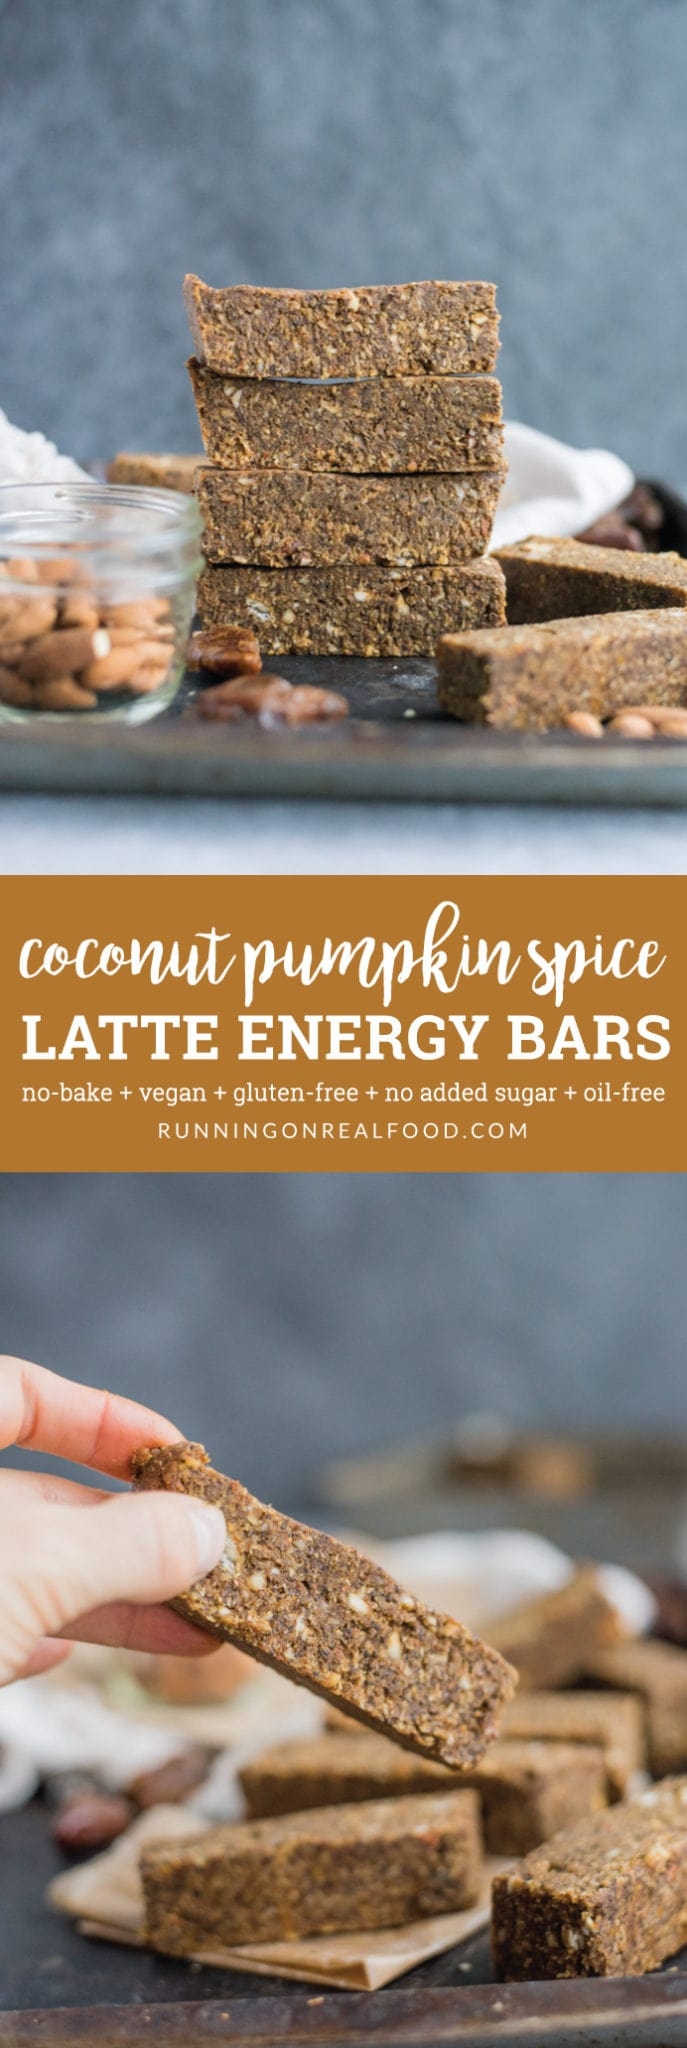 These no-bake, vegan coconut pumpkin spice latte energy bars have all the pumpkin spice flavour without all the added sugar. 6 ingredients, gluten-free.